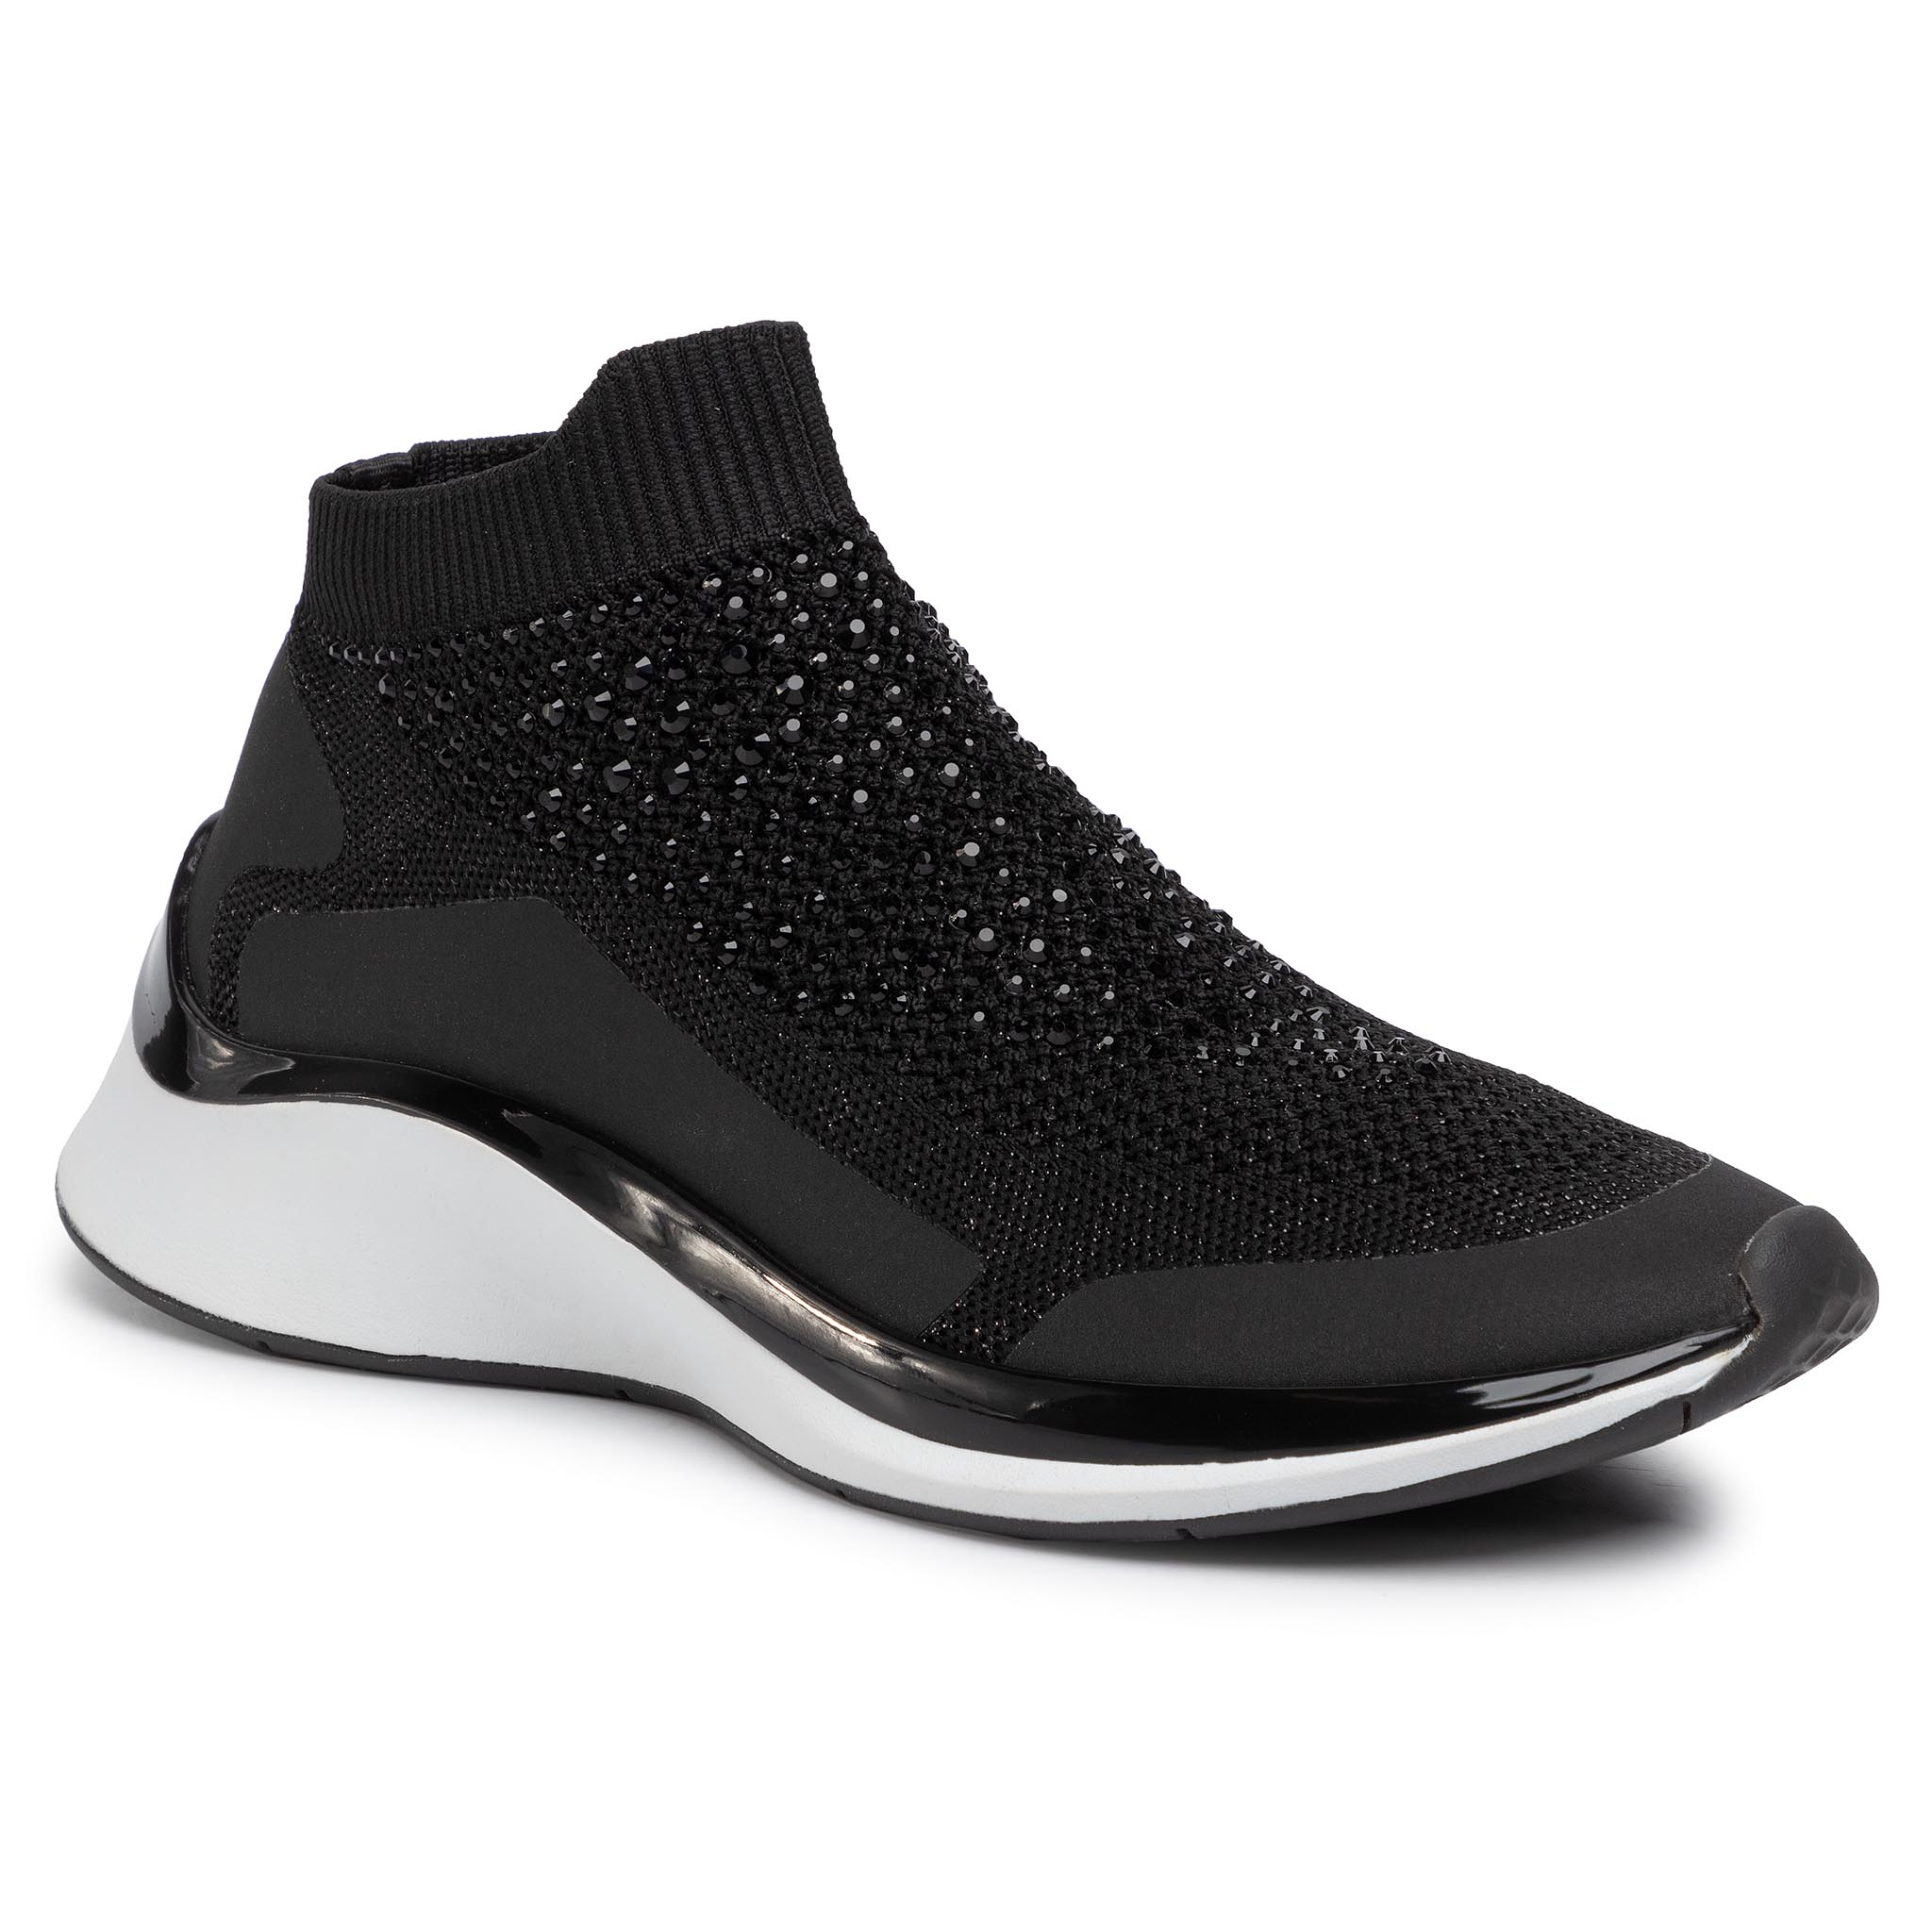 Sneakers TAMARIS - 1-25403-24 Black 001